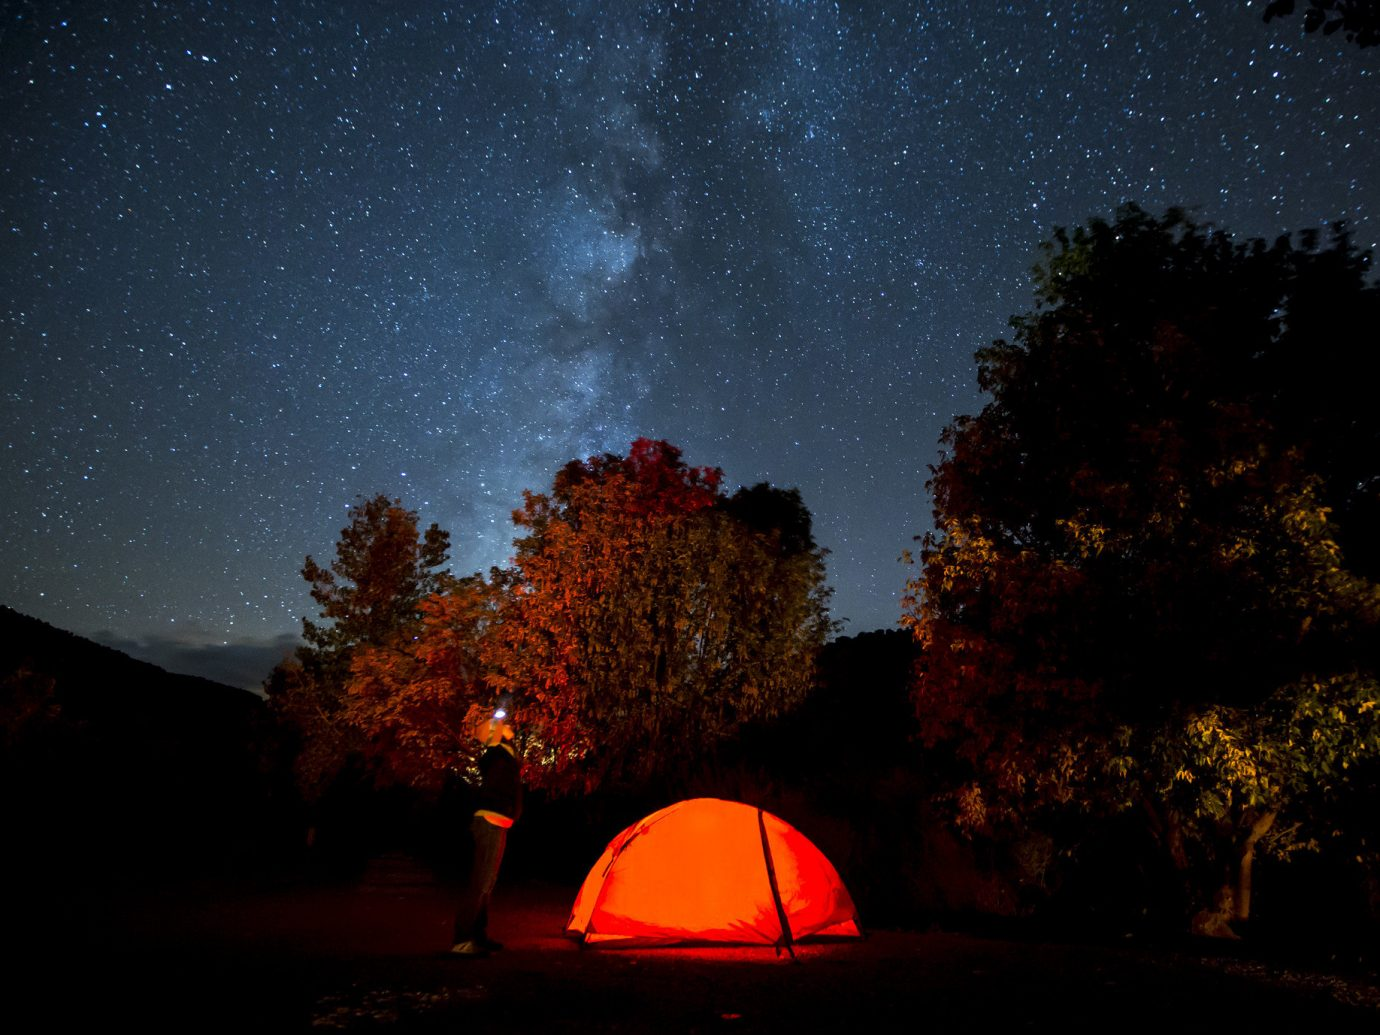 calm camping majestic Nature night night lights Night Sky Outdoor Activities Outdoors remote serene stars tent Travel Tips trees wilderness tree outdoor sky outdoor object light atmosphere darkness astronomical object dark star evening astronomy moonlight midnight Sunset